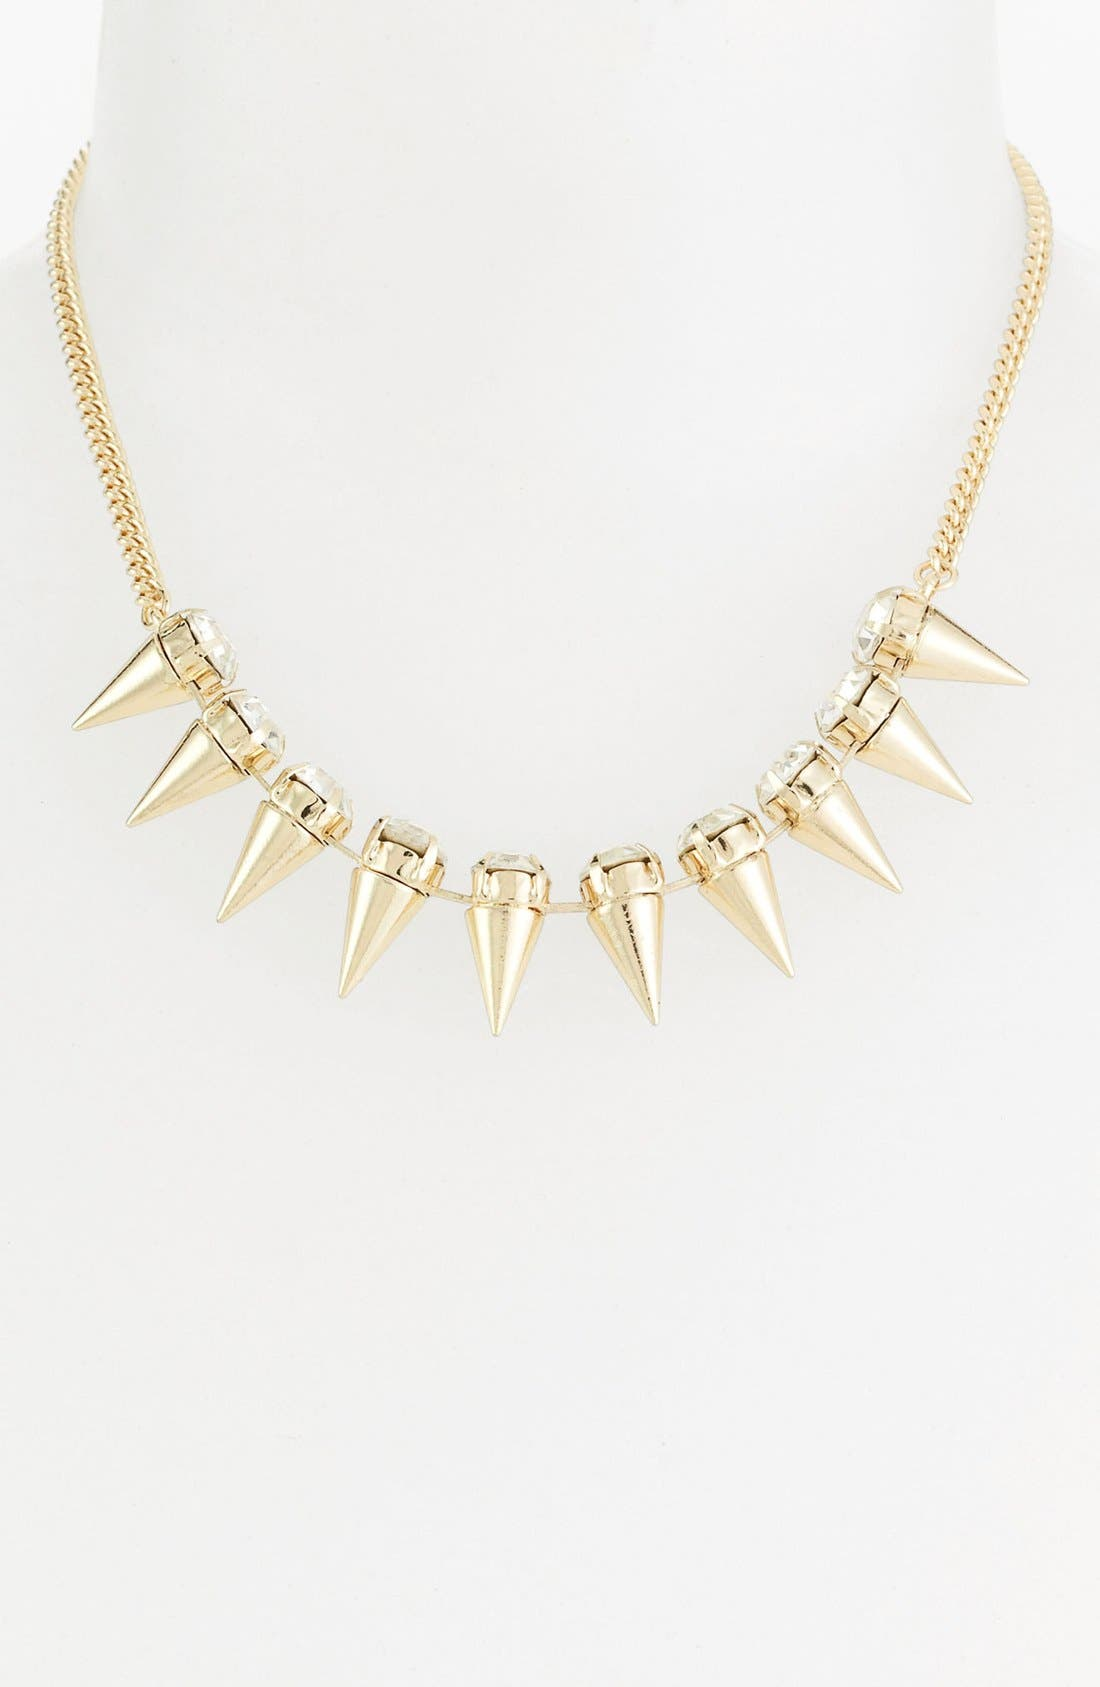 STATEMENTS BY DCK Metal Spike Necklace, Main, color, 700